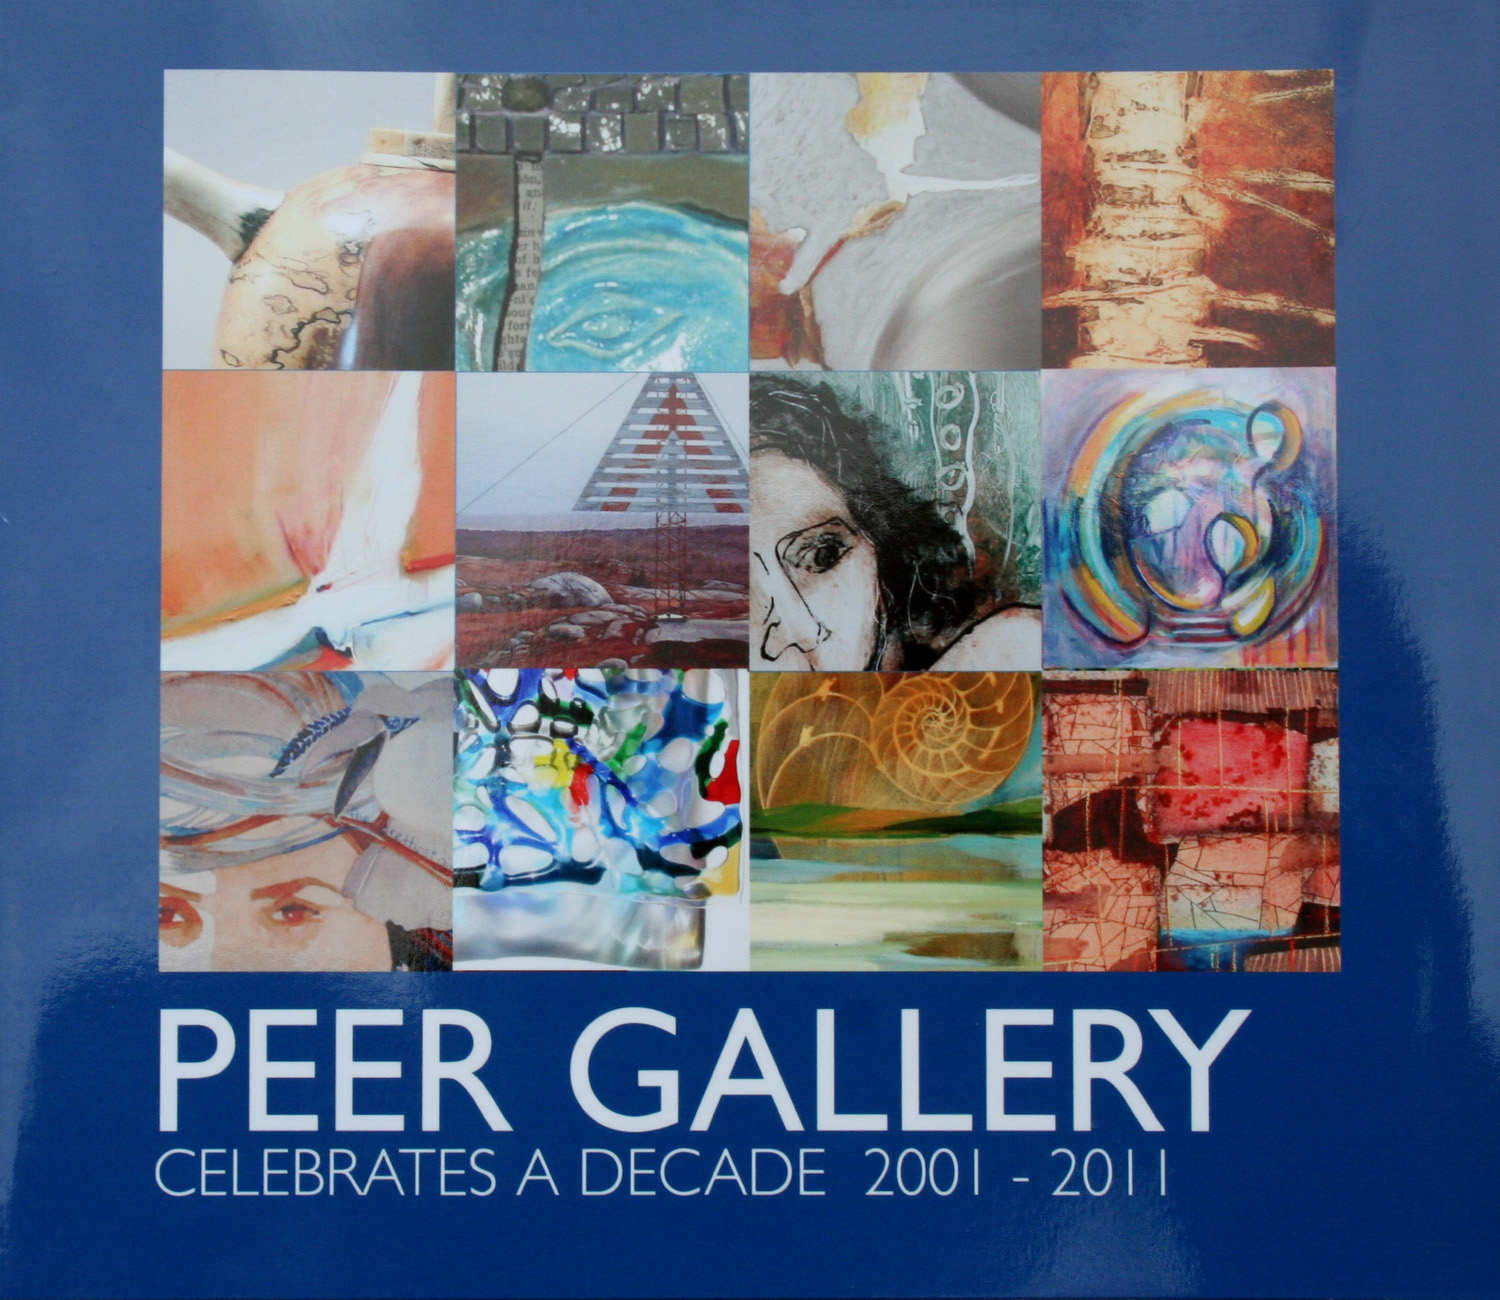 In 2016, the artist co-op gallery, Peer Gallery in Lunenburg, N.S., celebrated 15 years of excellence in the very tough gallery business. Bob is one of 13 artists in the juried membership of Nova Scotia artists.